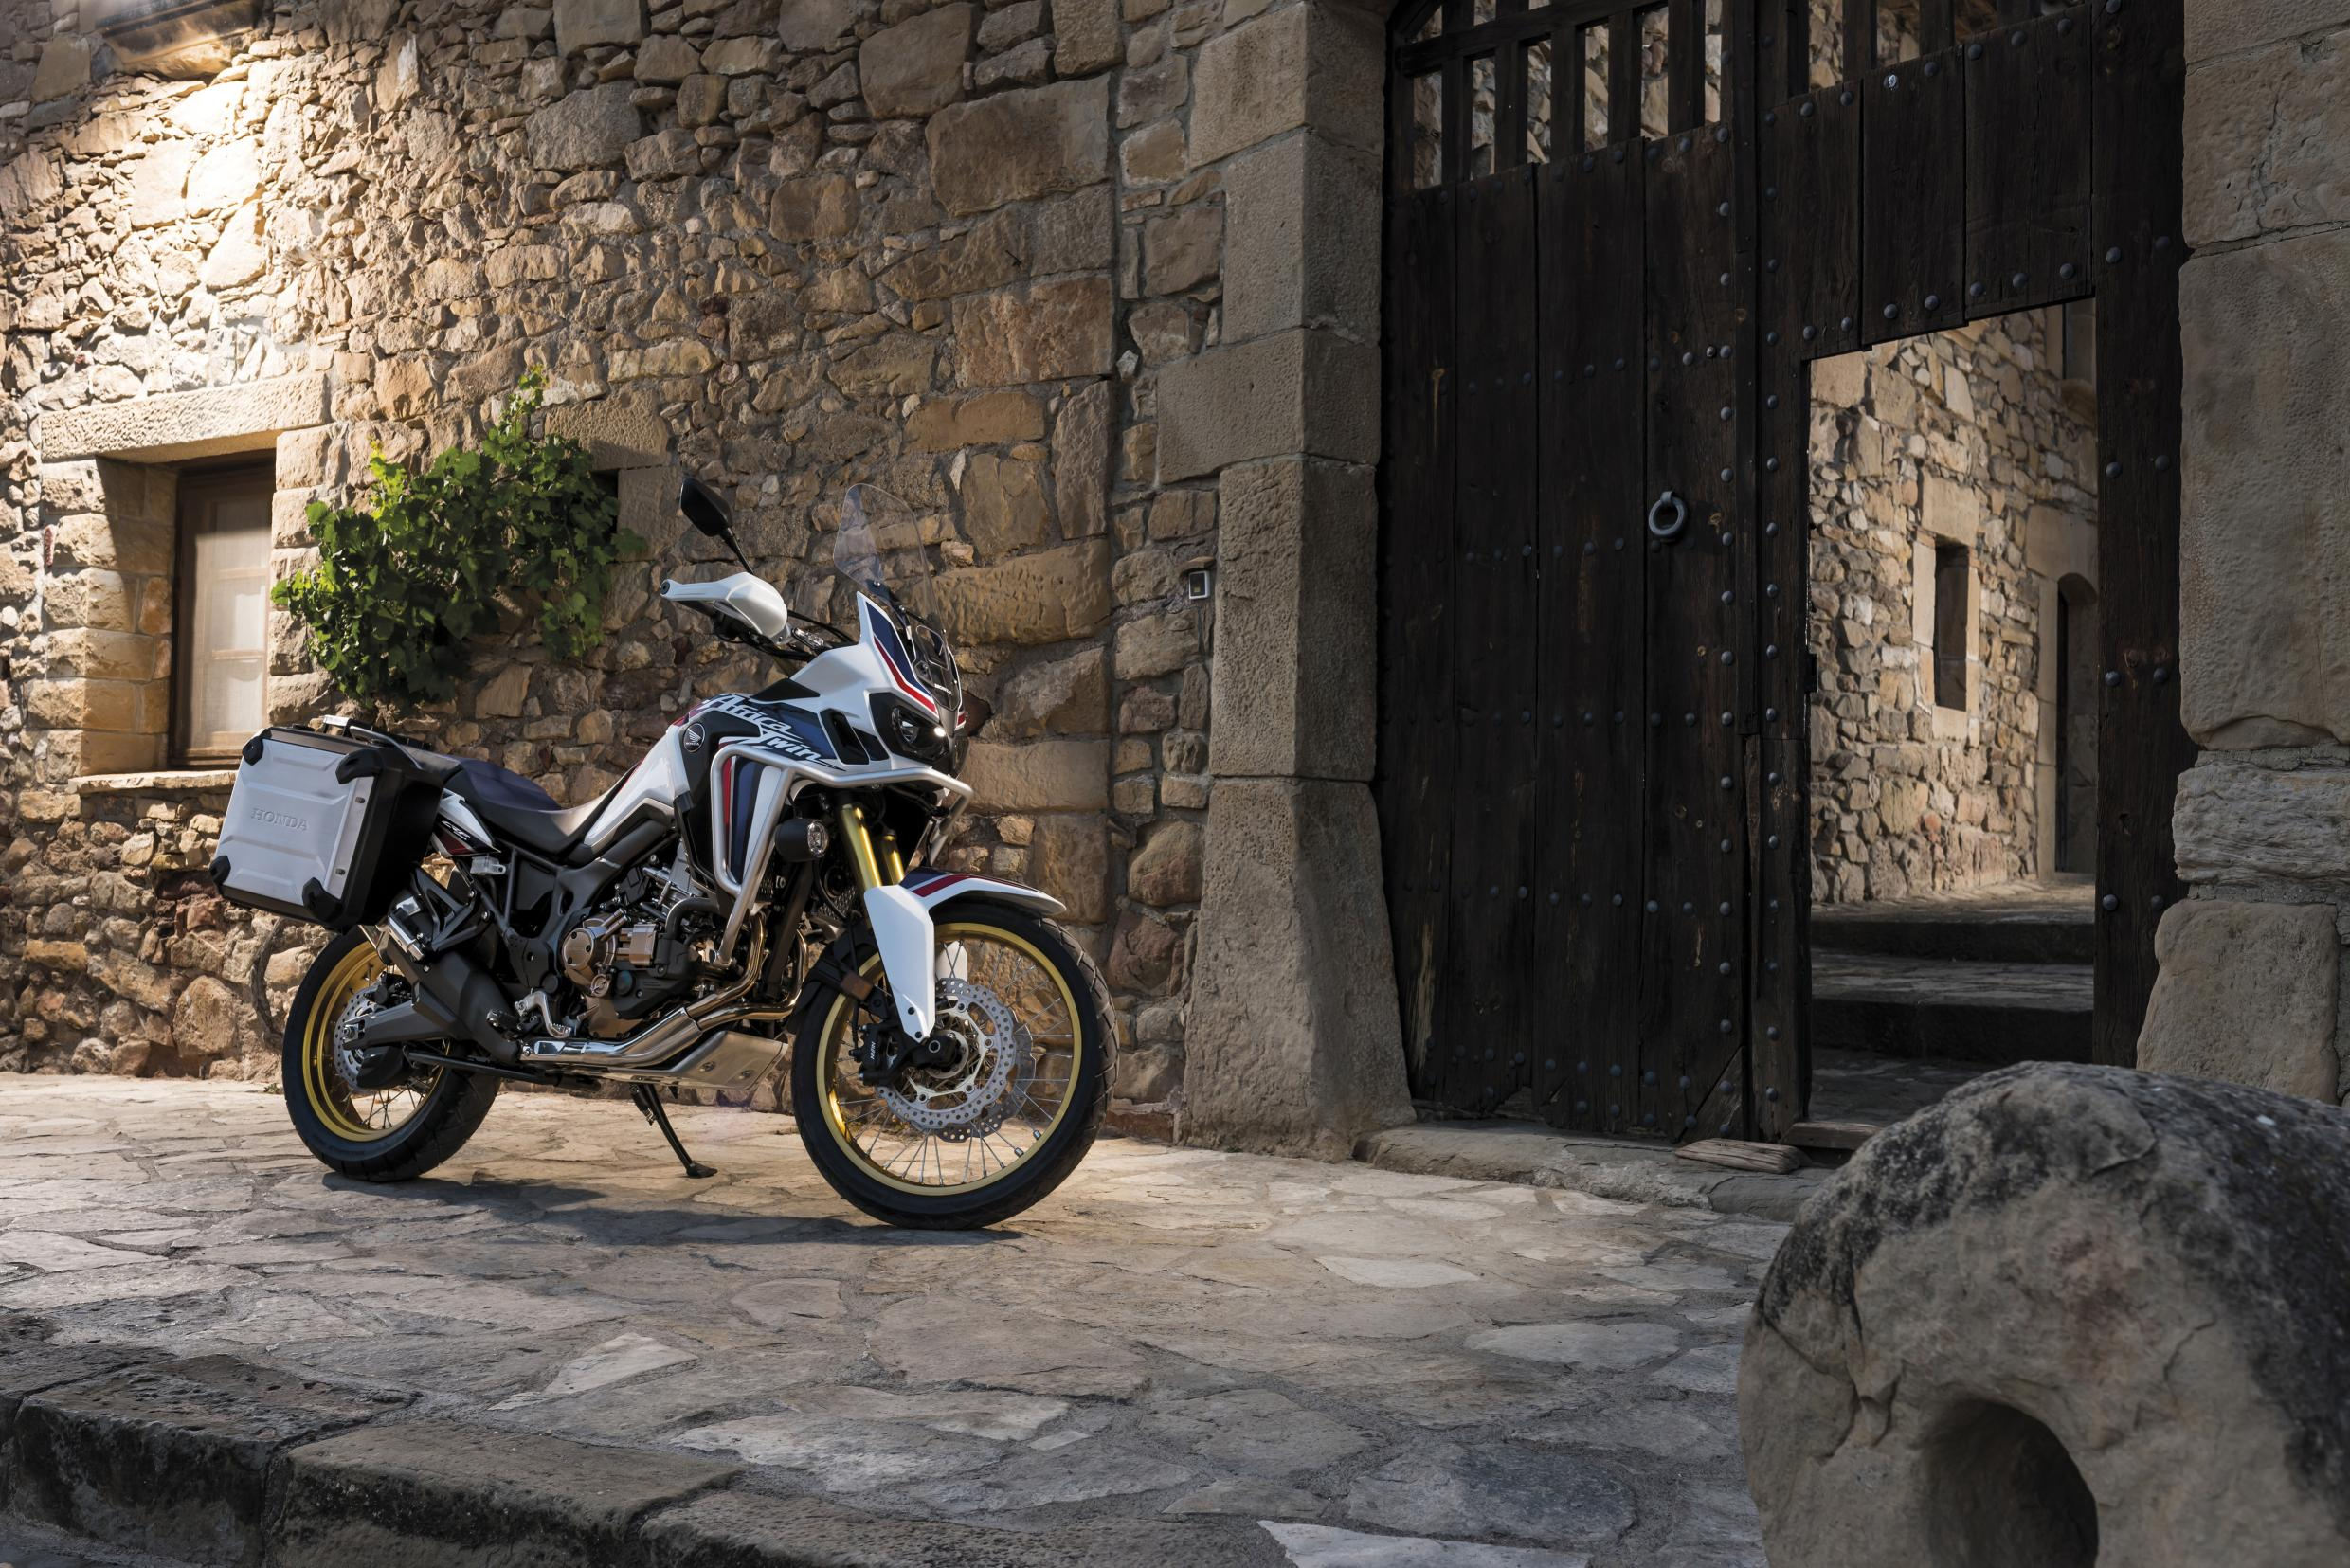 2015 Africa Twin priced at £10,499